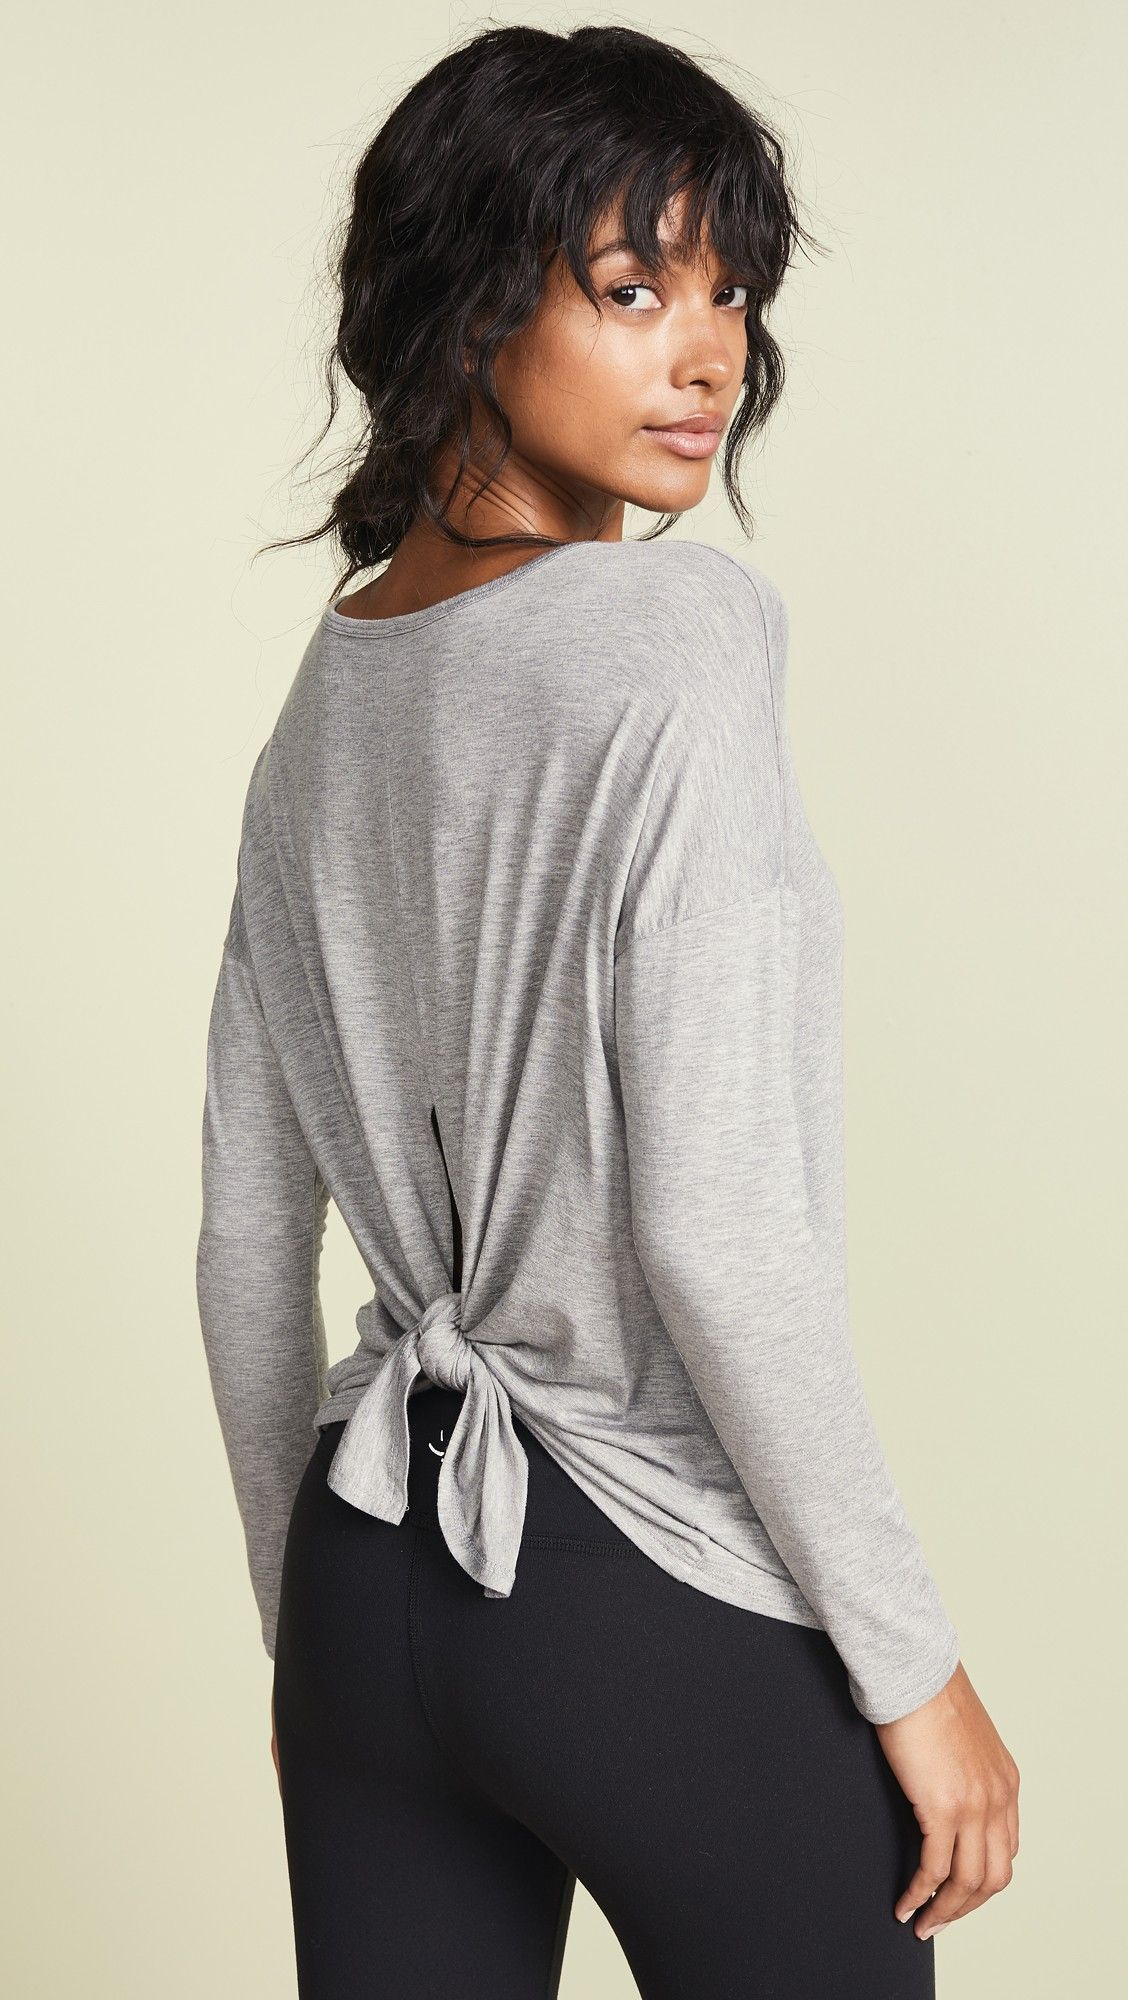 d51a998449178 Behold  The 10 Best Long-Sleeved Workout Tops You Can Buy